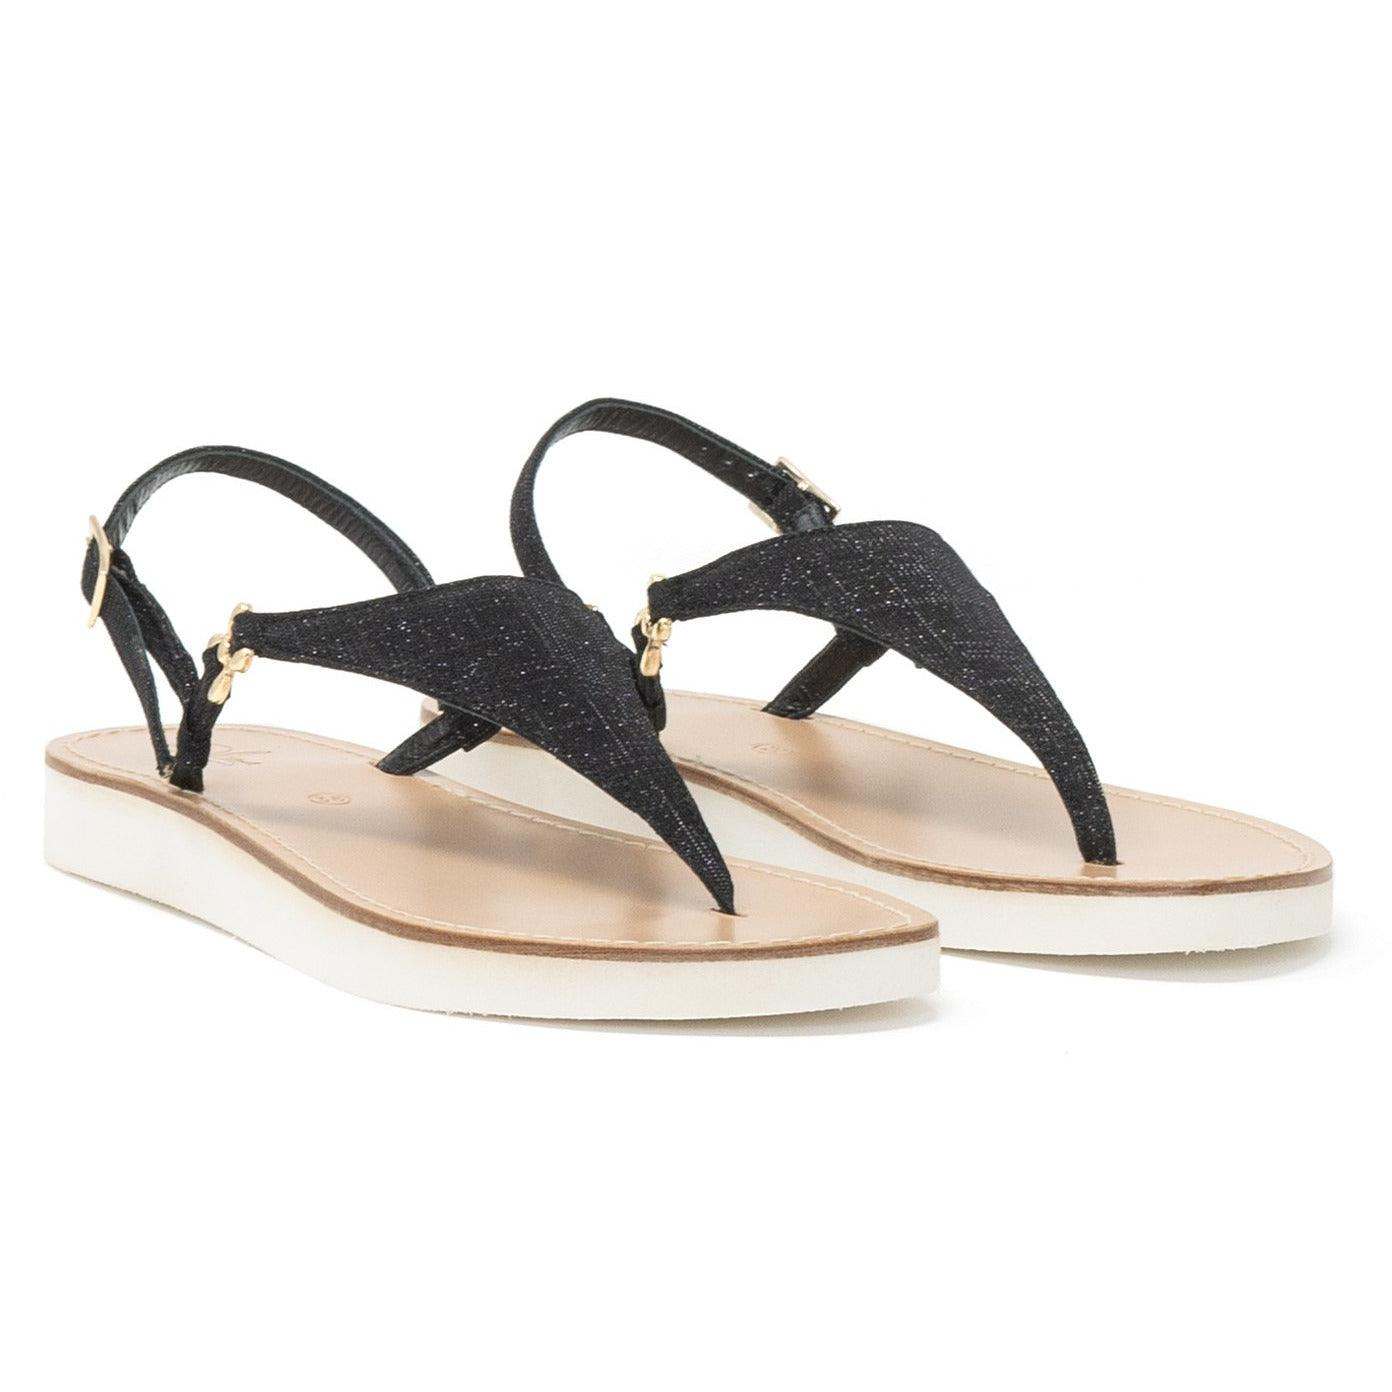 MPOP38 T10 Women Sandals - New Spring Summer 2020 Collection